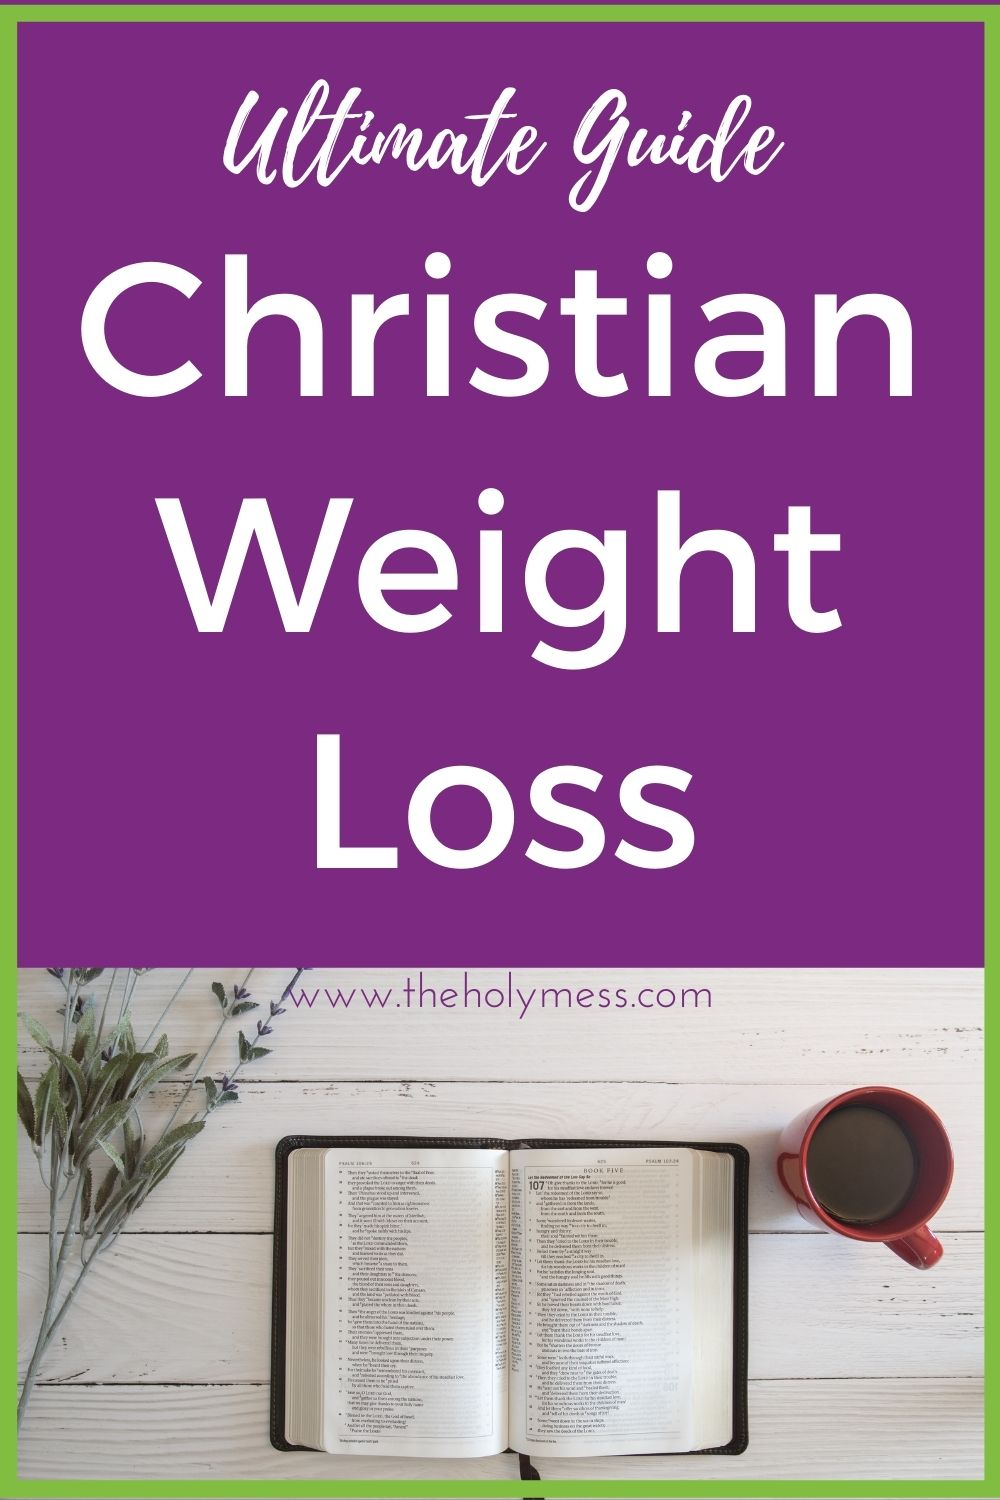 Christian weight loss for women, Bible on table with flowers and coffee via @foodhussy